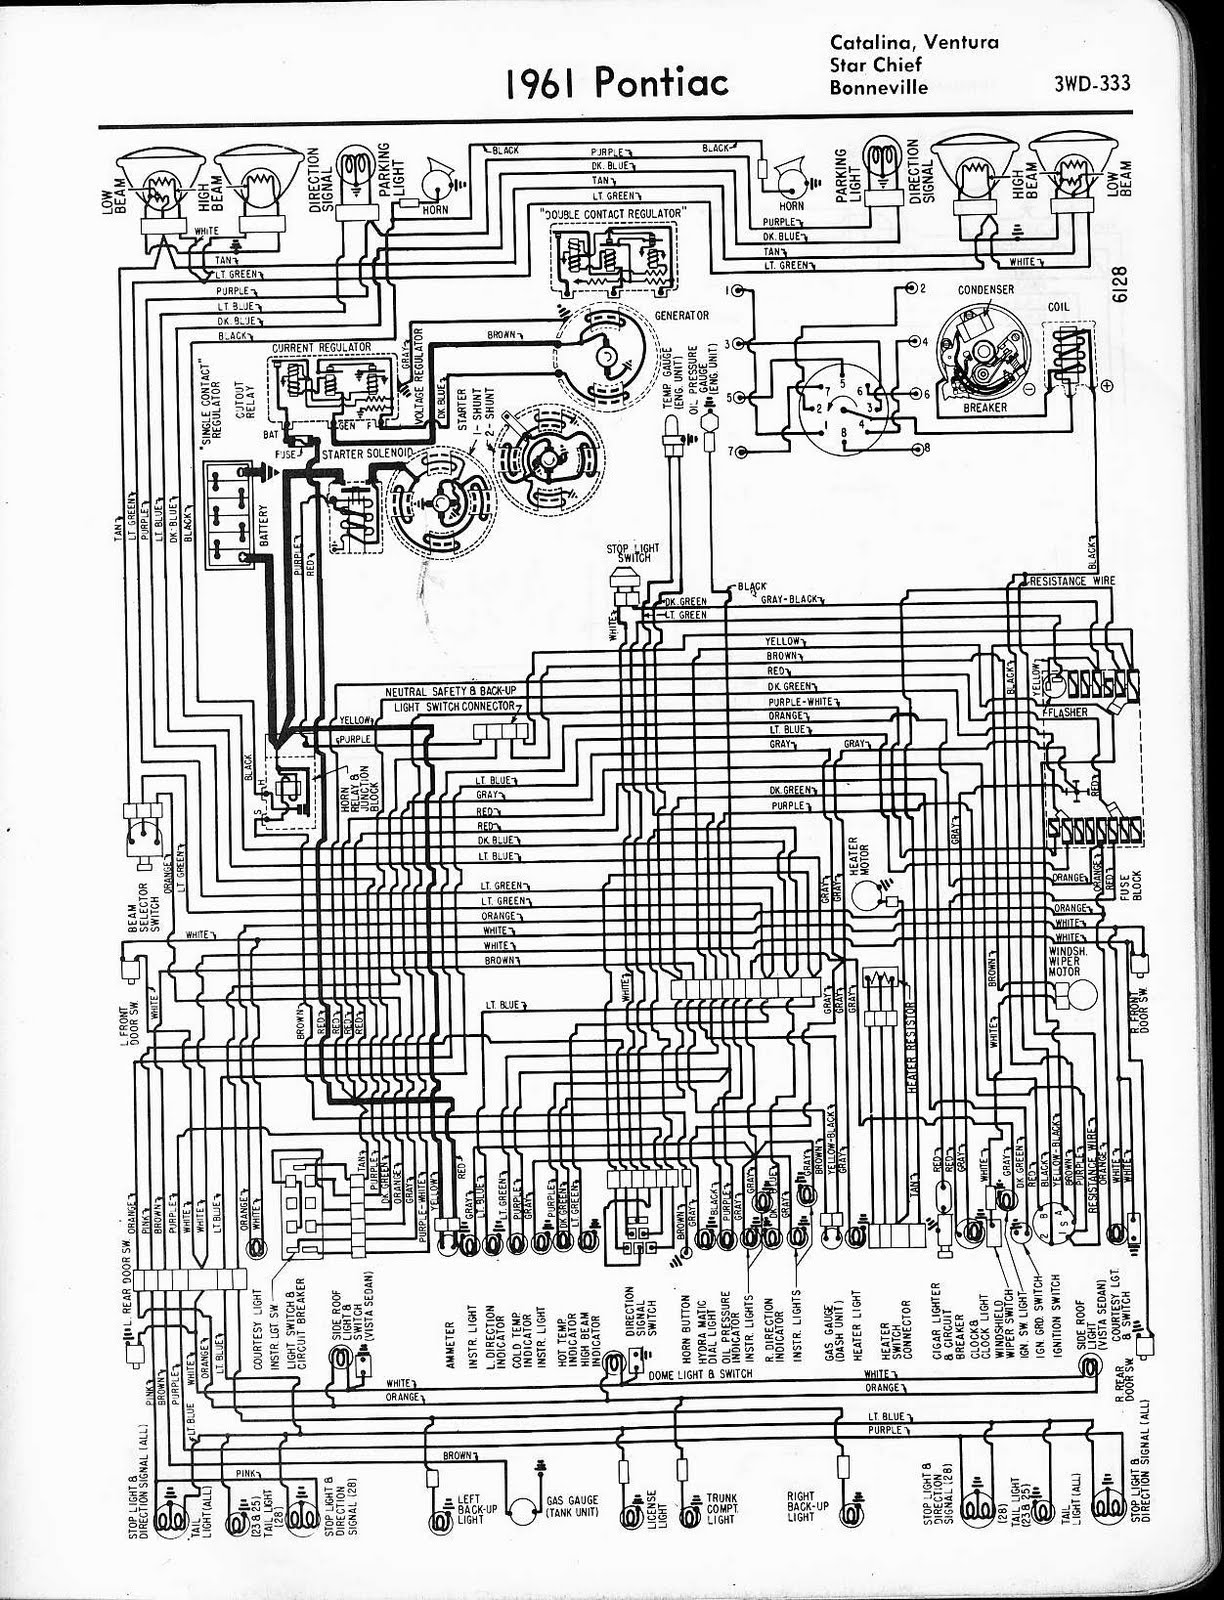 small resolution of wiring diagram for a 72 catalina wiring library rh 60 muehlwald de 1963 pontiac grand prix